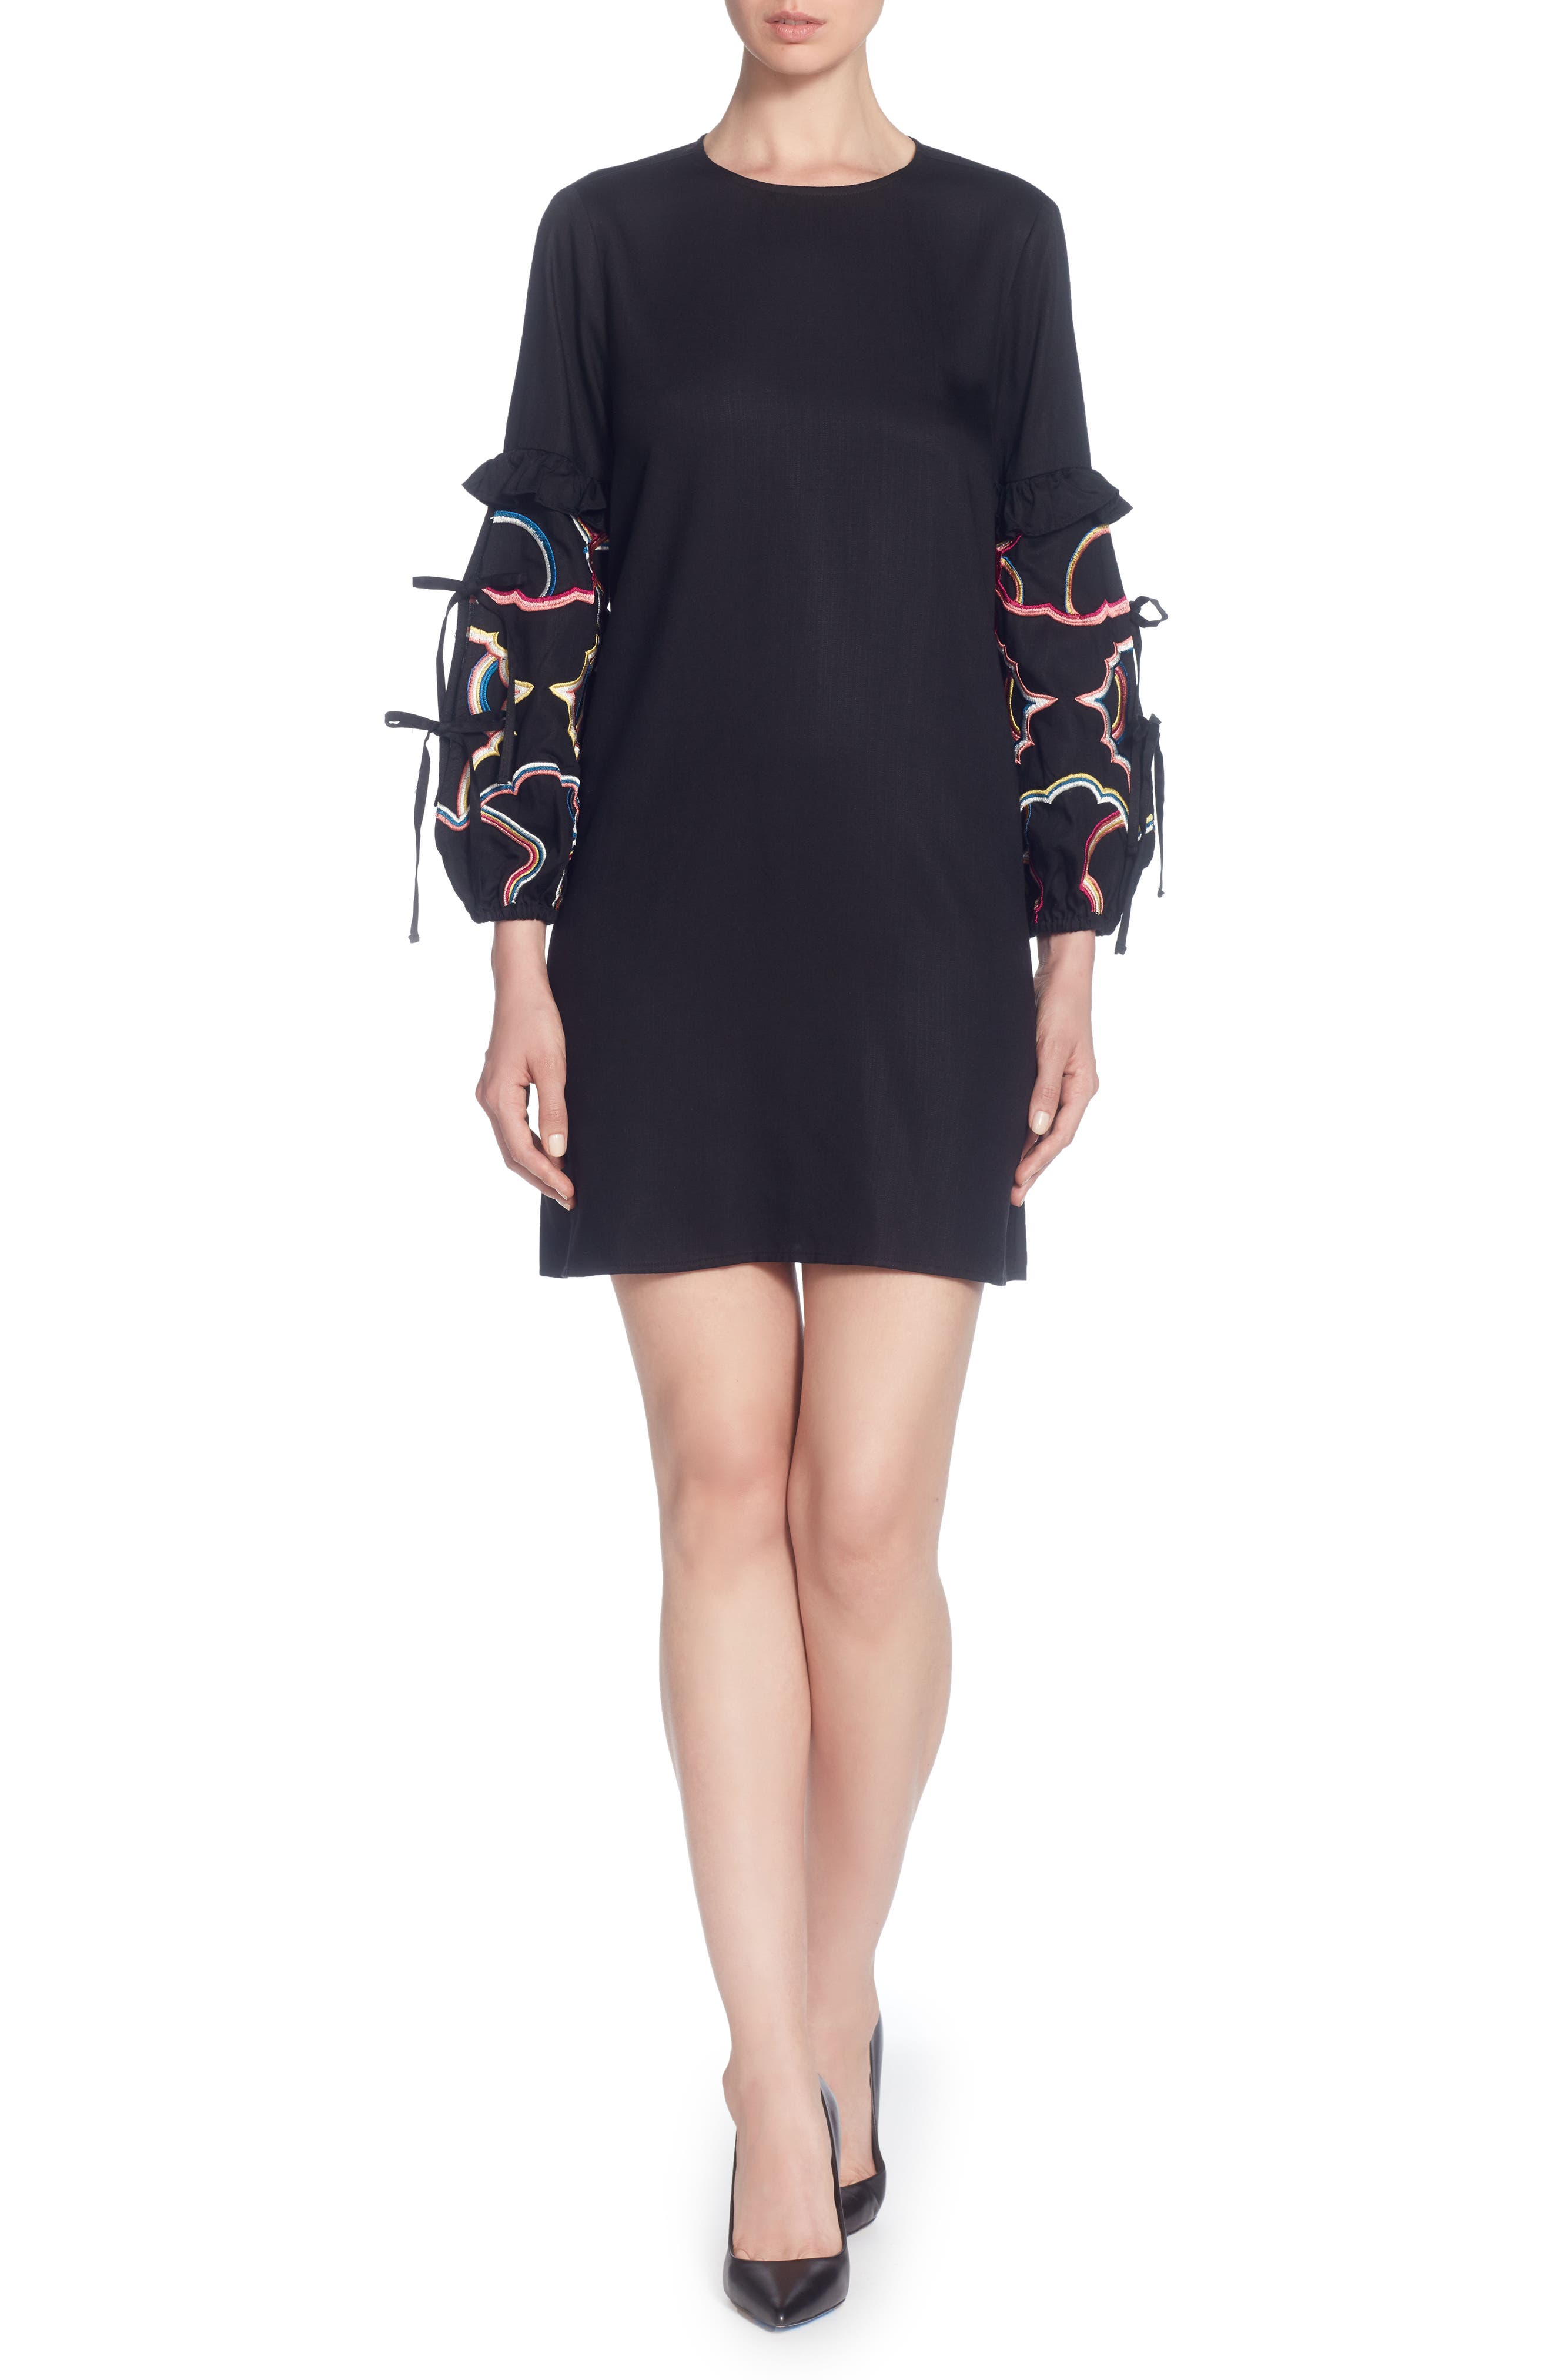 Dahl Embroidered Sleeve Dress,                         Main,                         color, 001